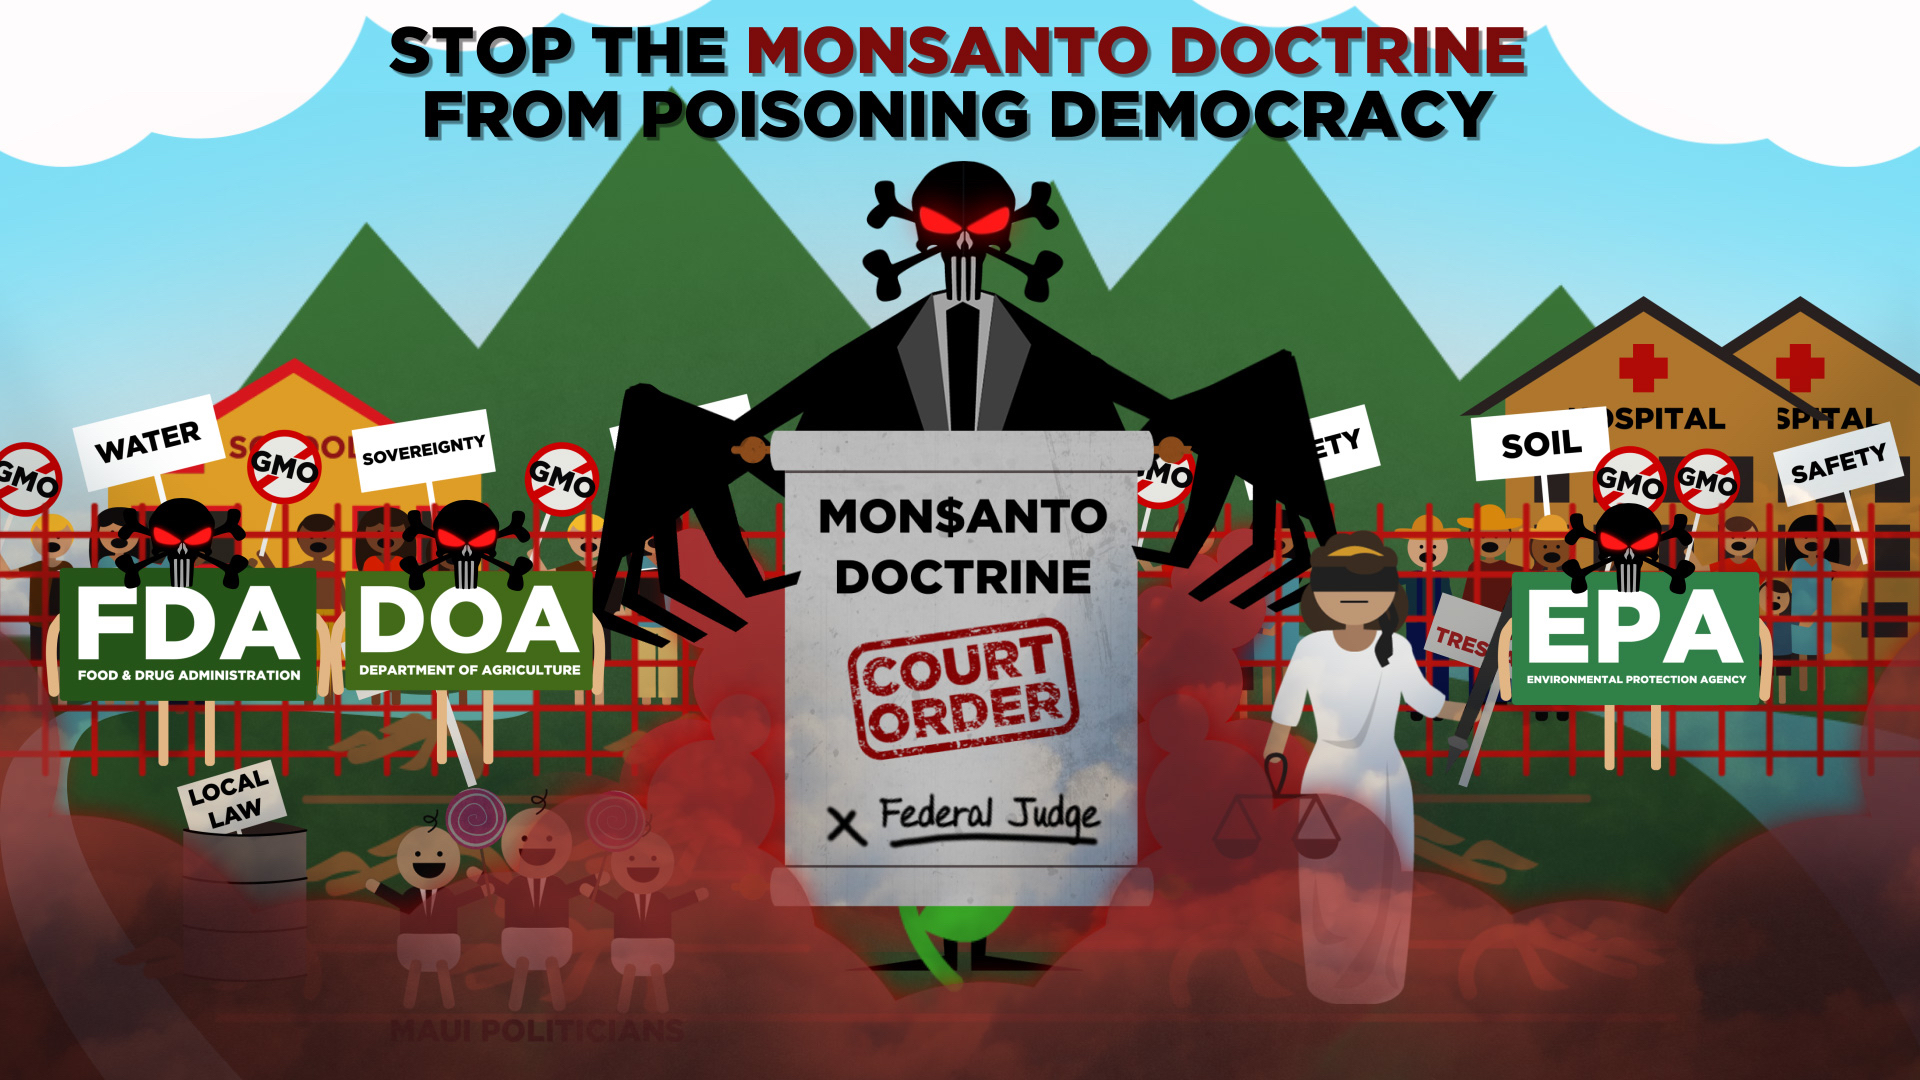 Stop the Monsanto Doctrine from Poisoning Democracy June 5 2016 FInal